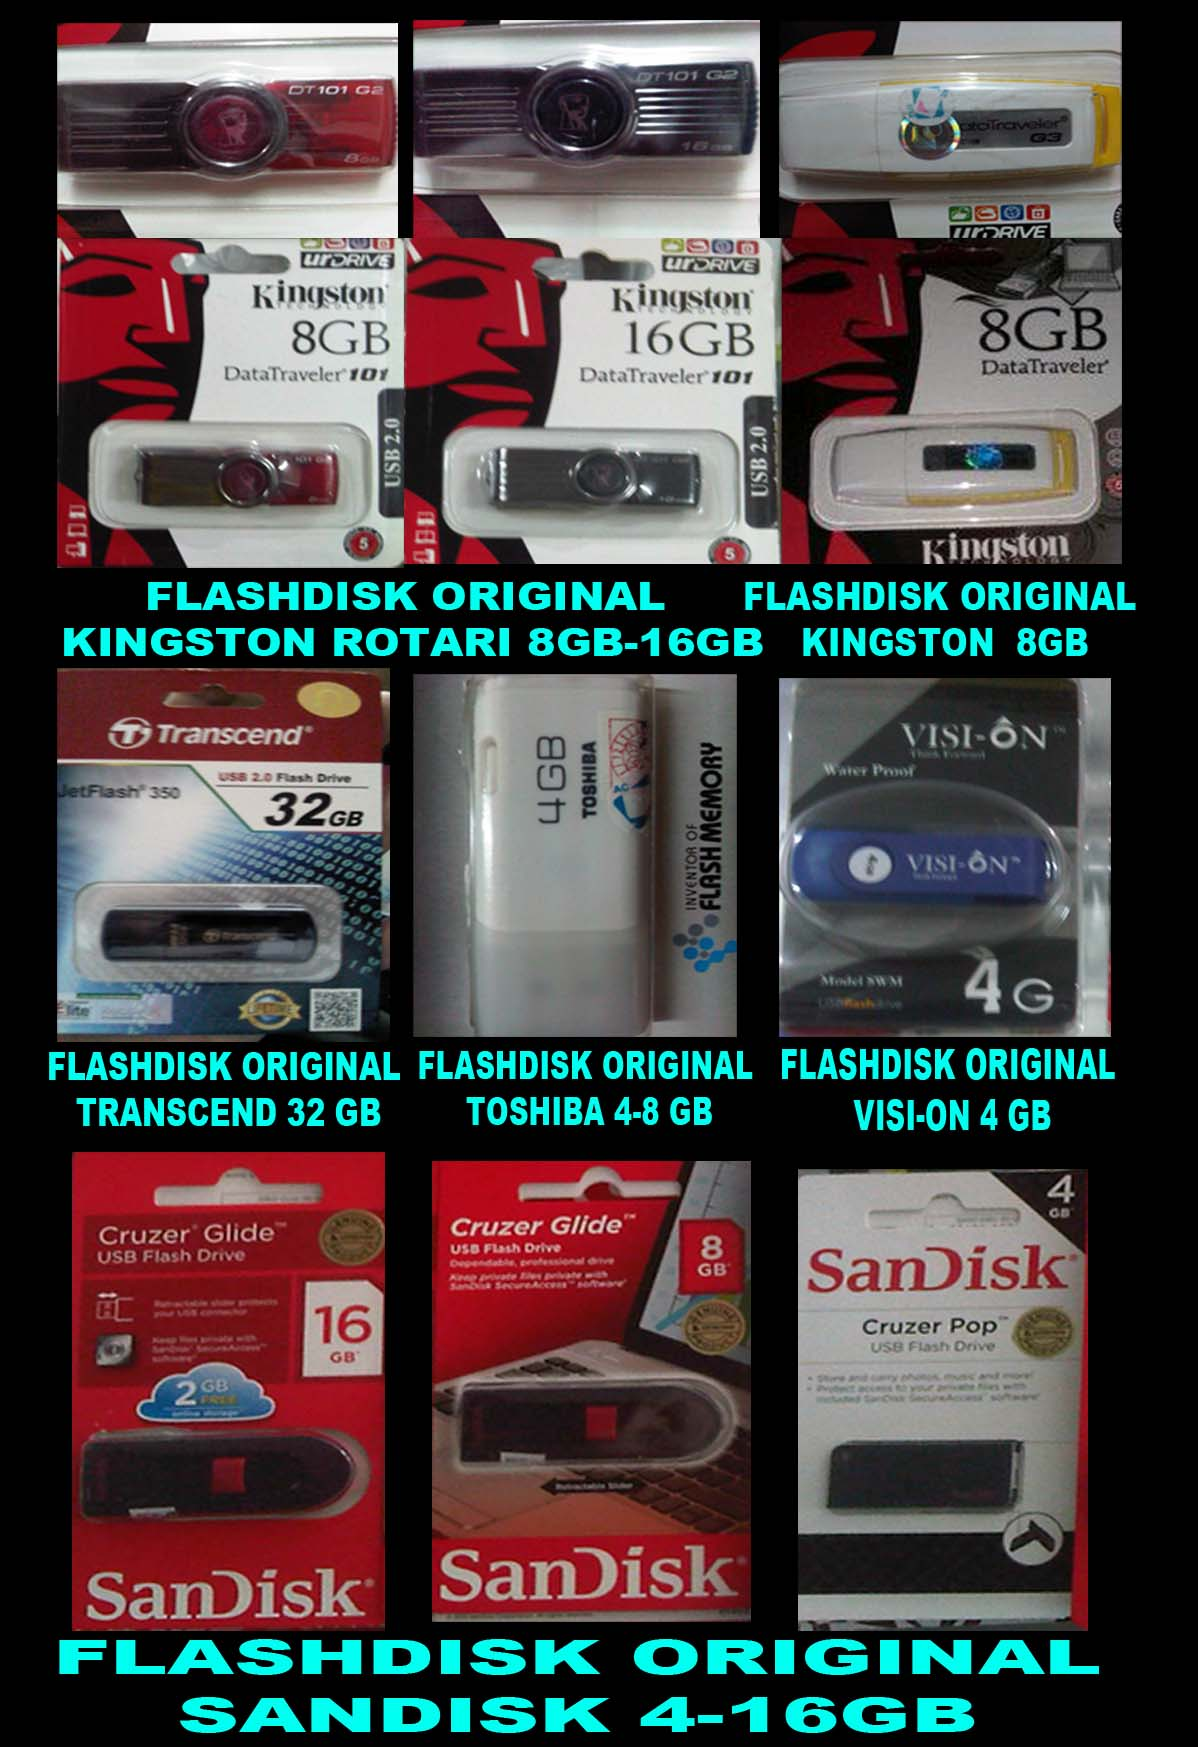 FLASHDISK ORIGINAL (REAL CAPACITY AND QUALITY)